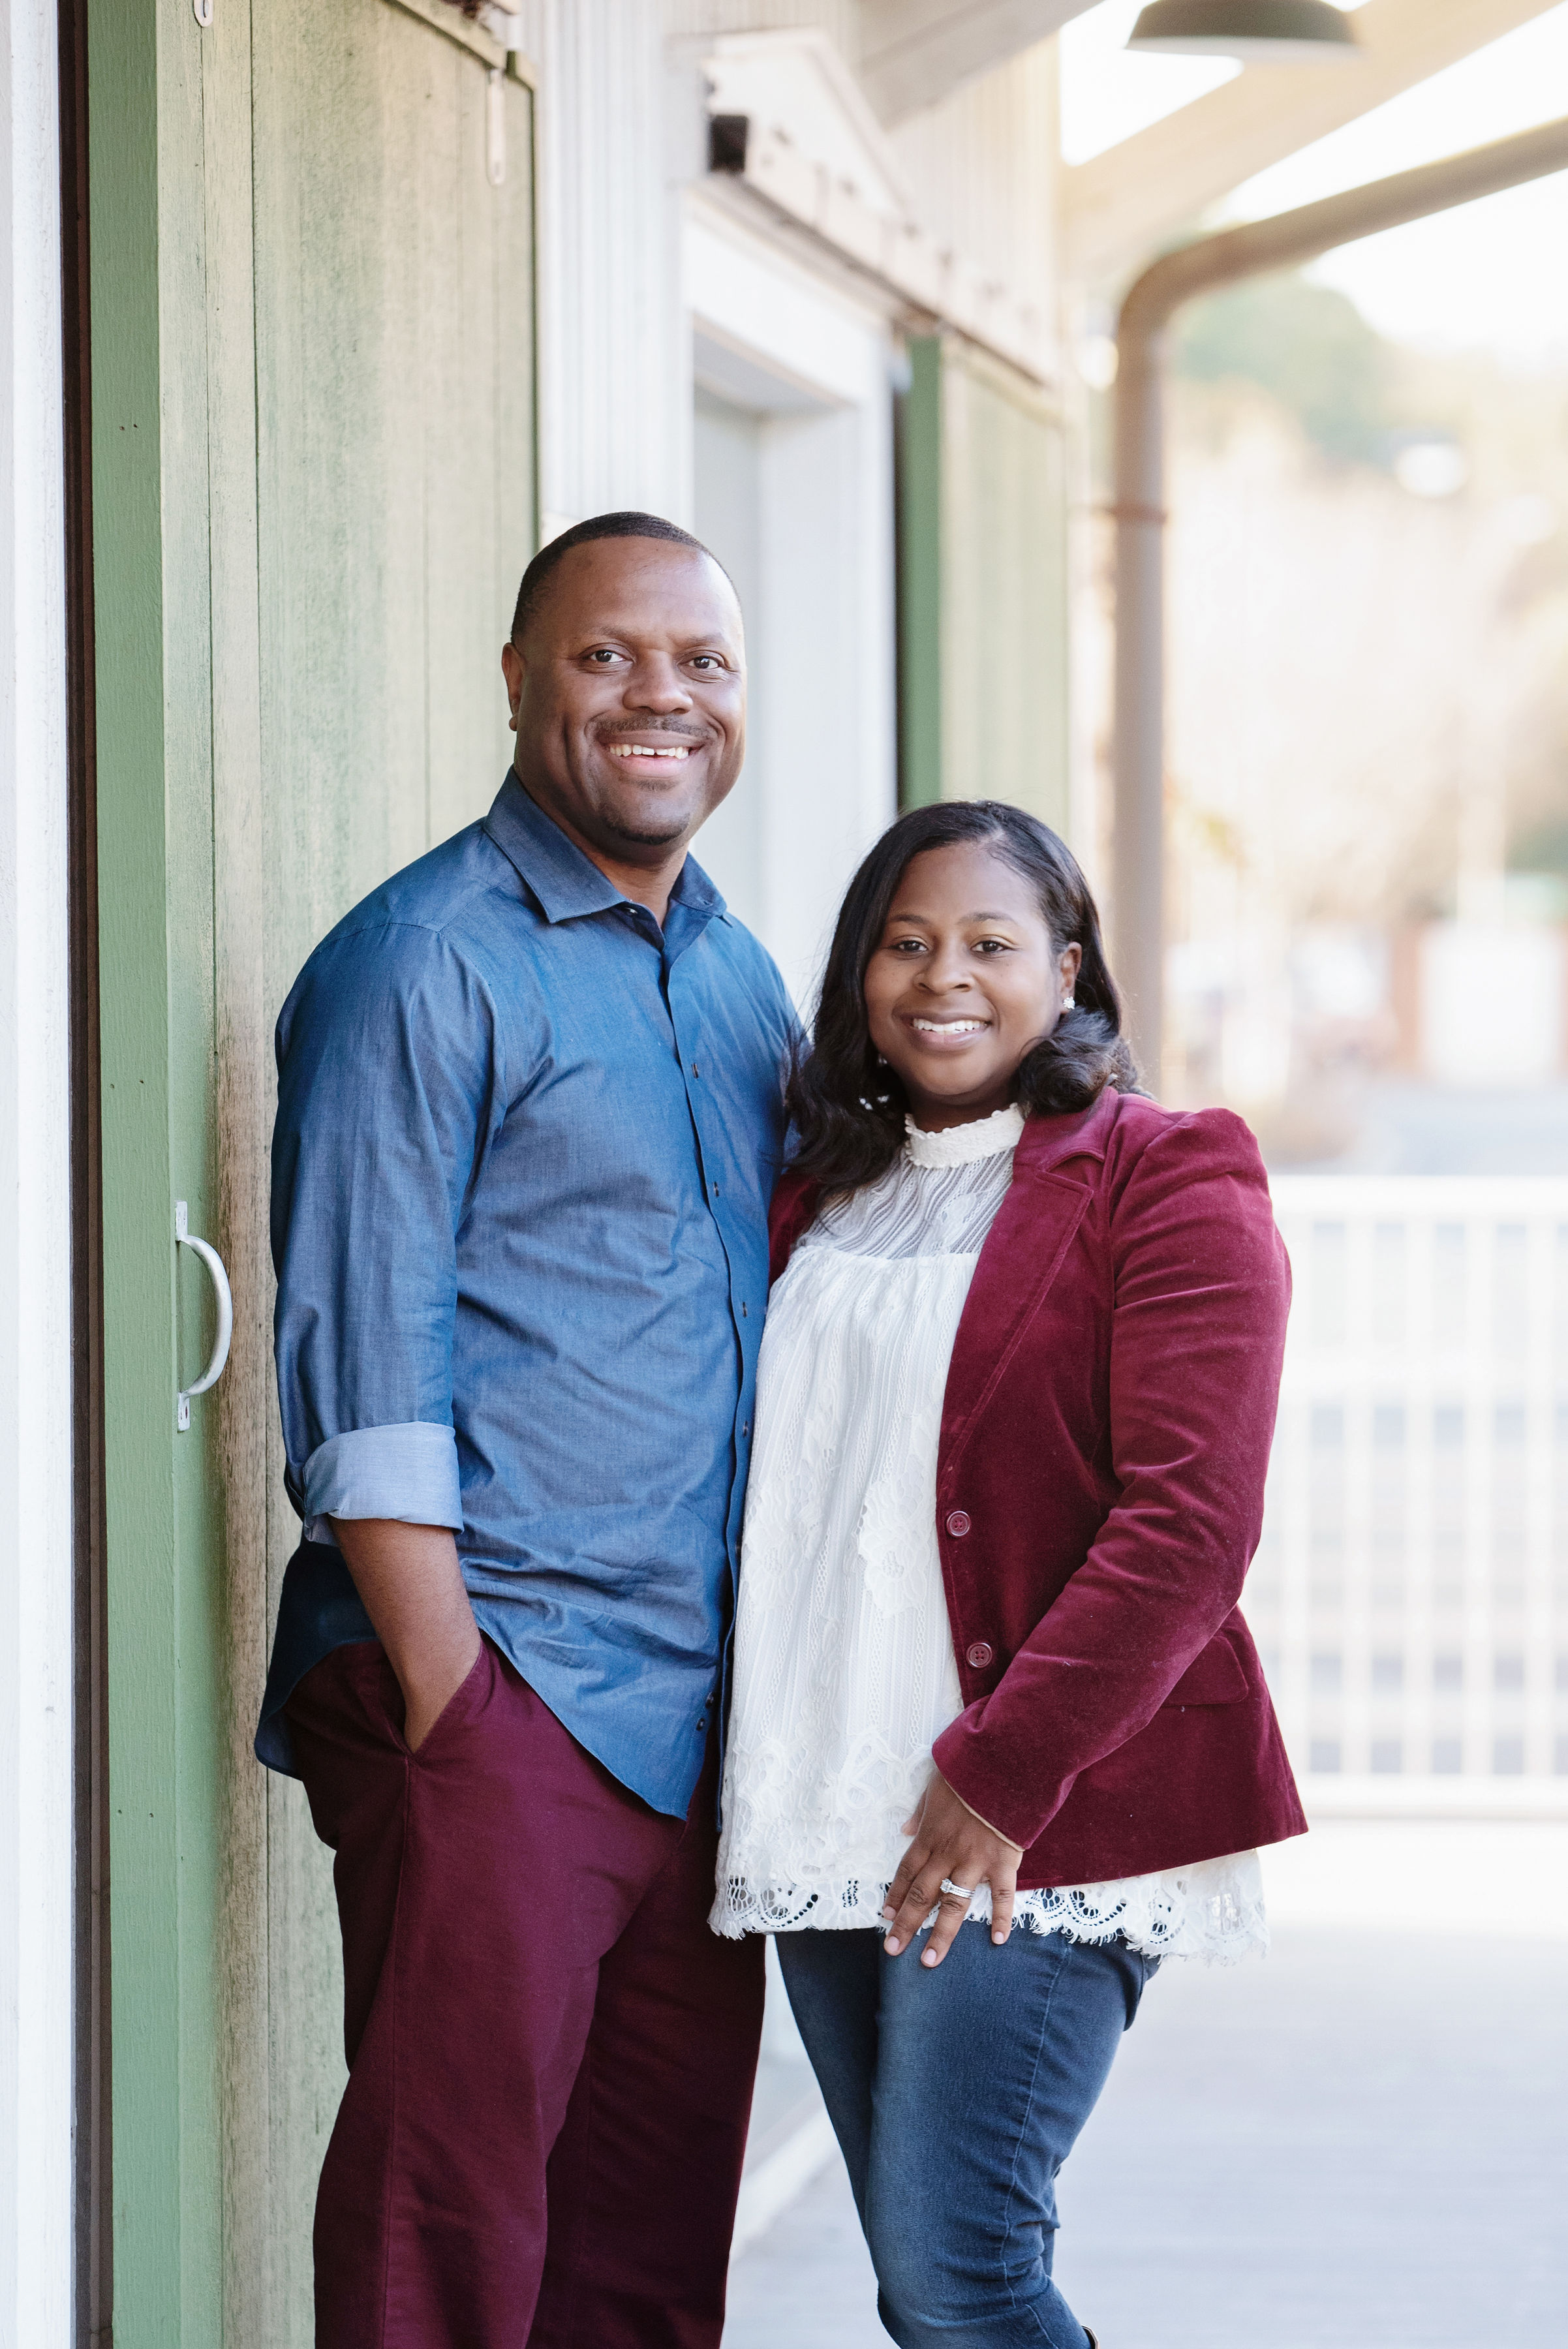 This photo of Pastor DaVon and his wife Stacy is from http://truelifefc.org/pastors/.